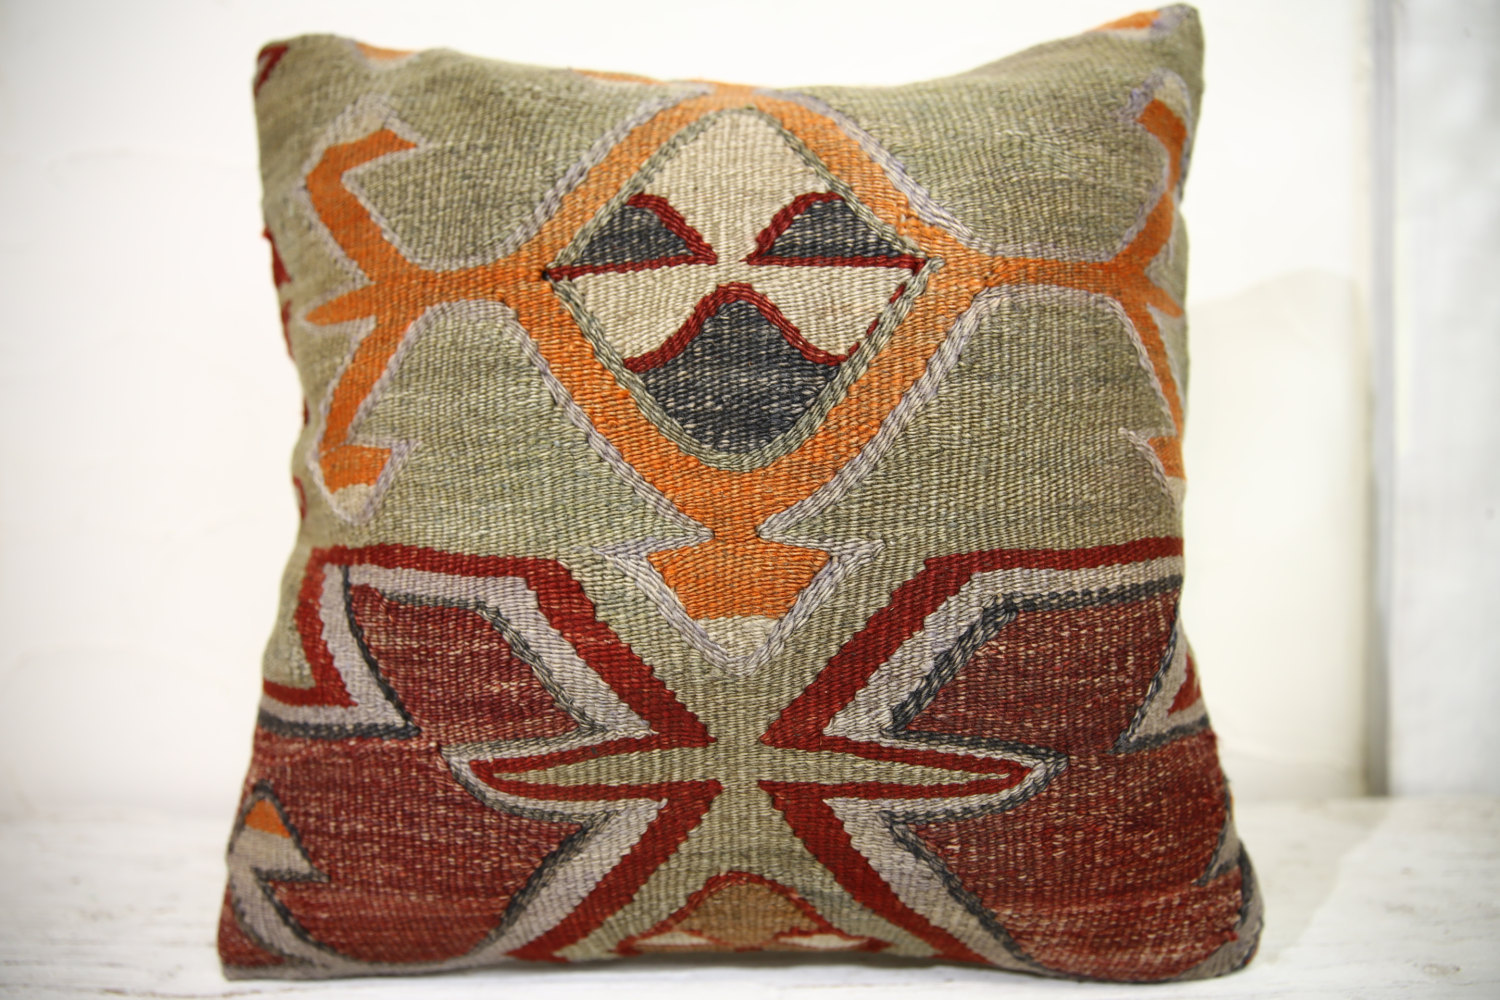 Kilim Pillows |18x18| Decorative Pillows | 1002 | Accent Pillows, Kilim cushion